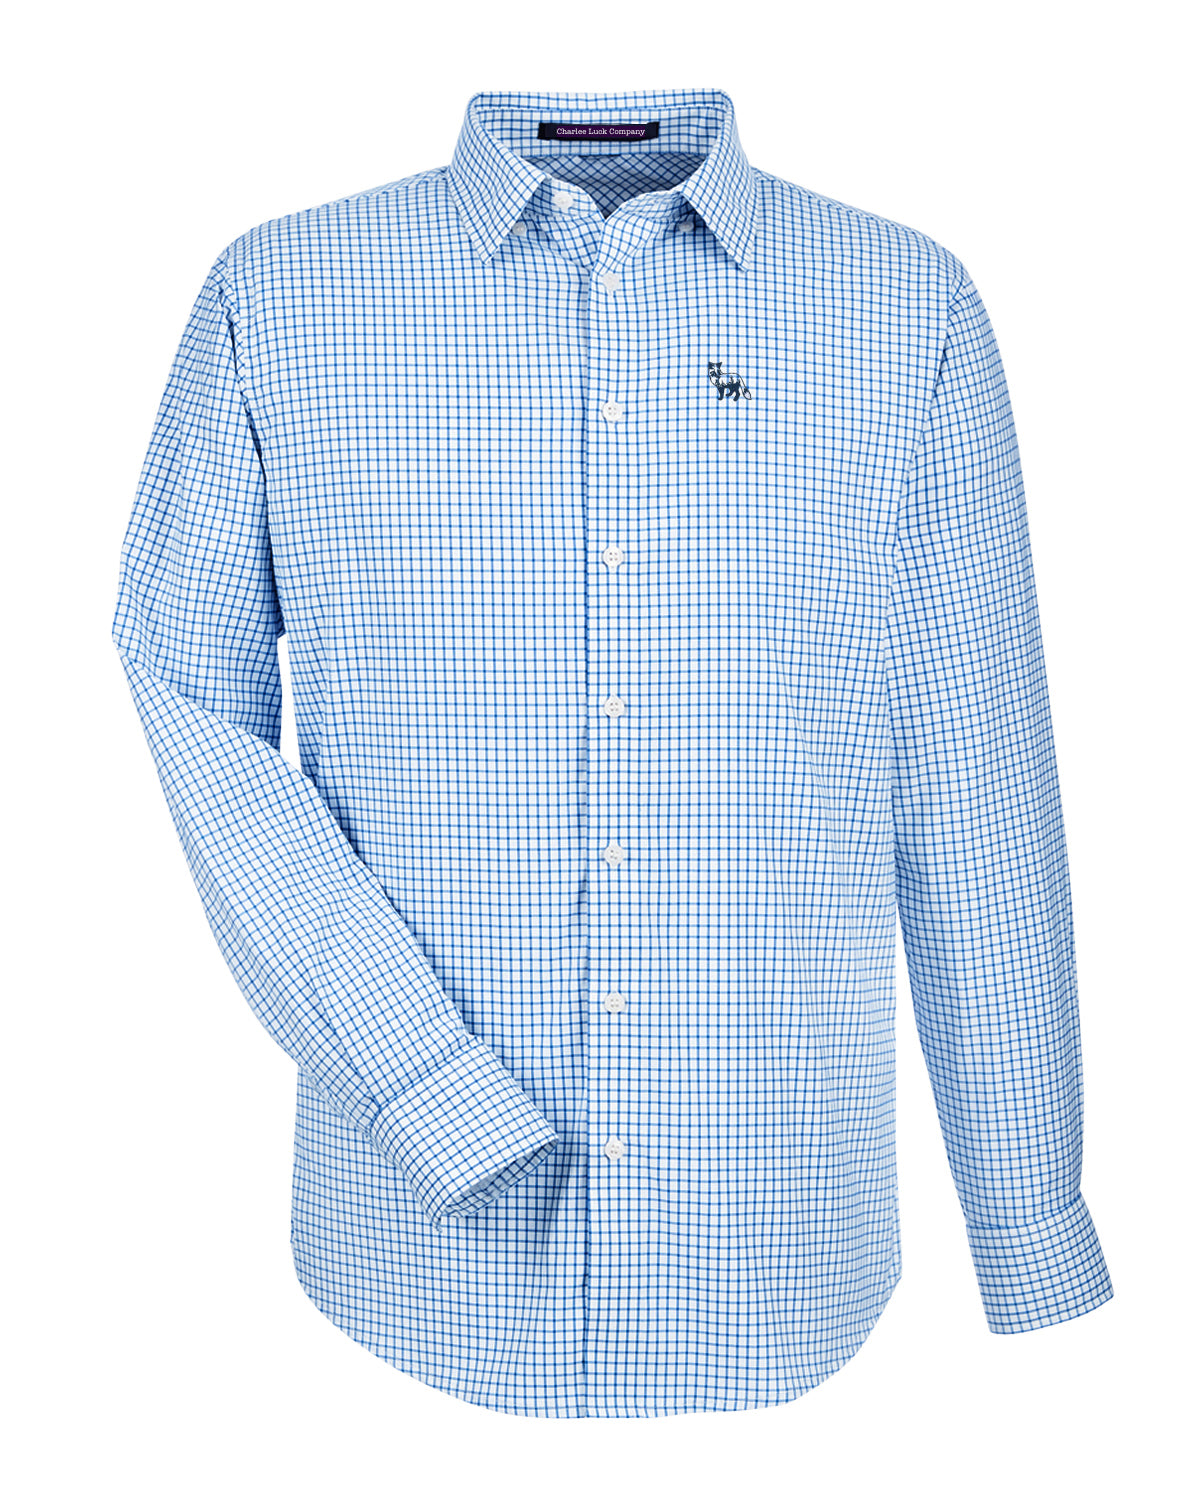 The Sport Button Down Blue